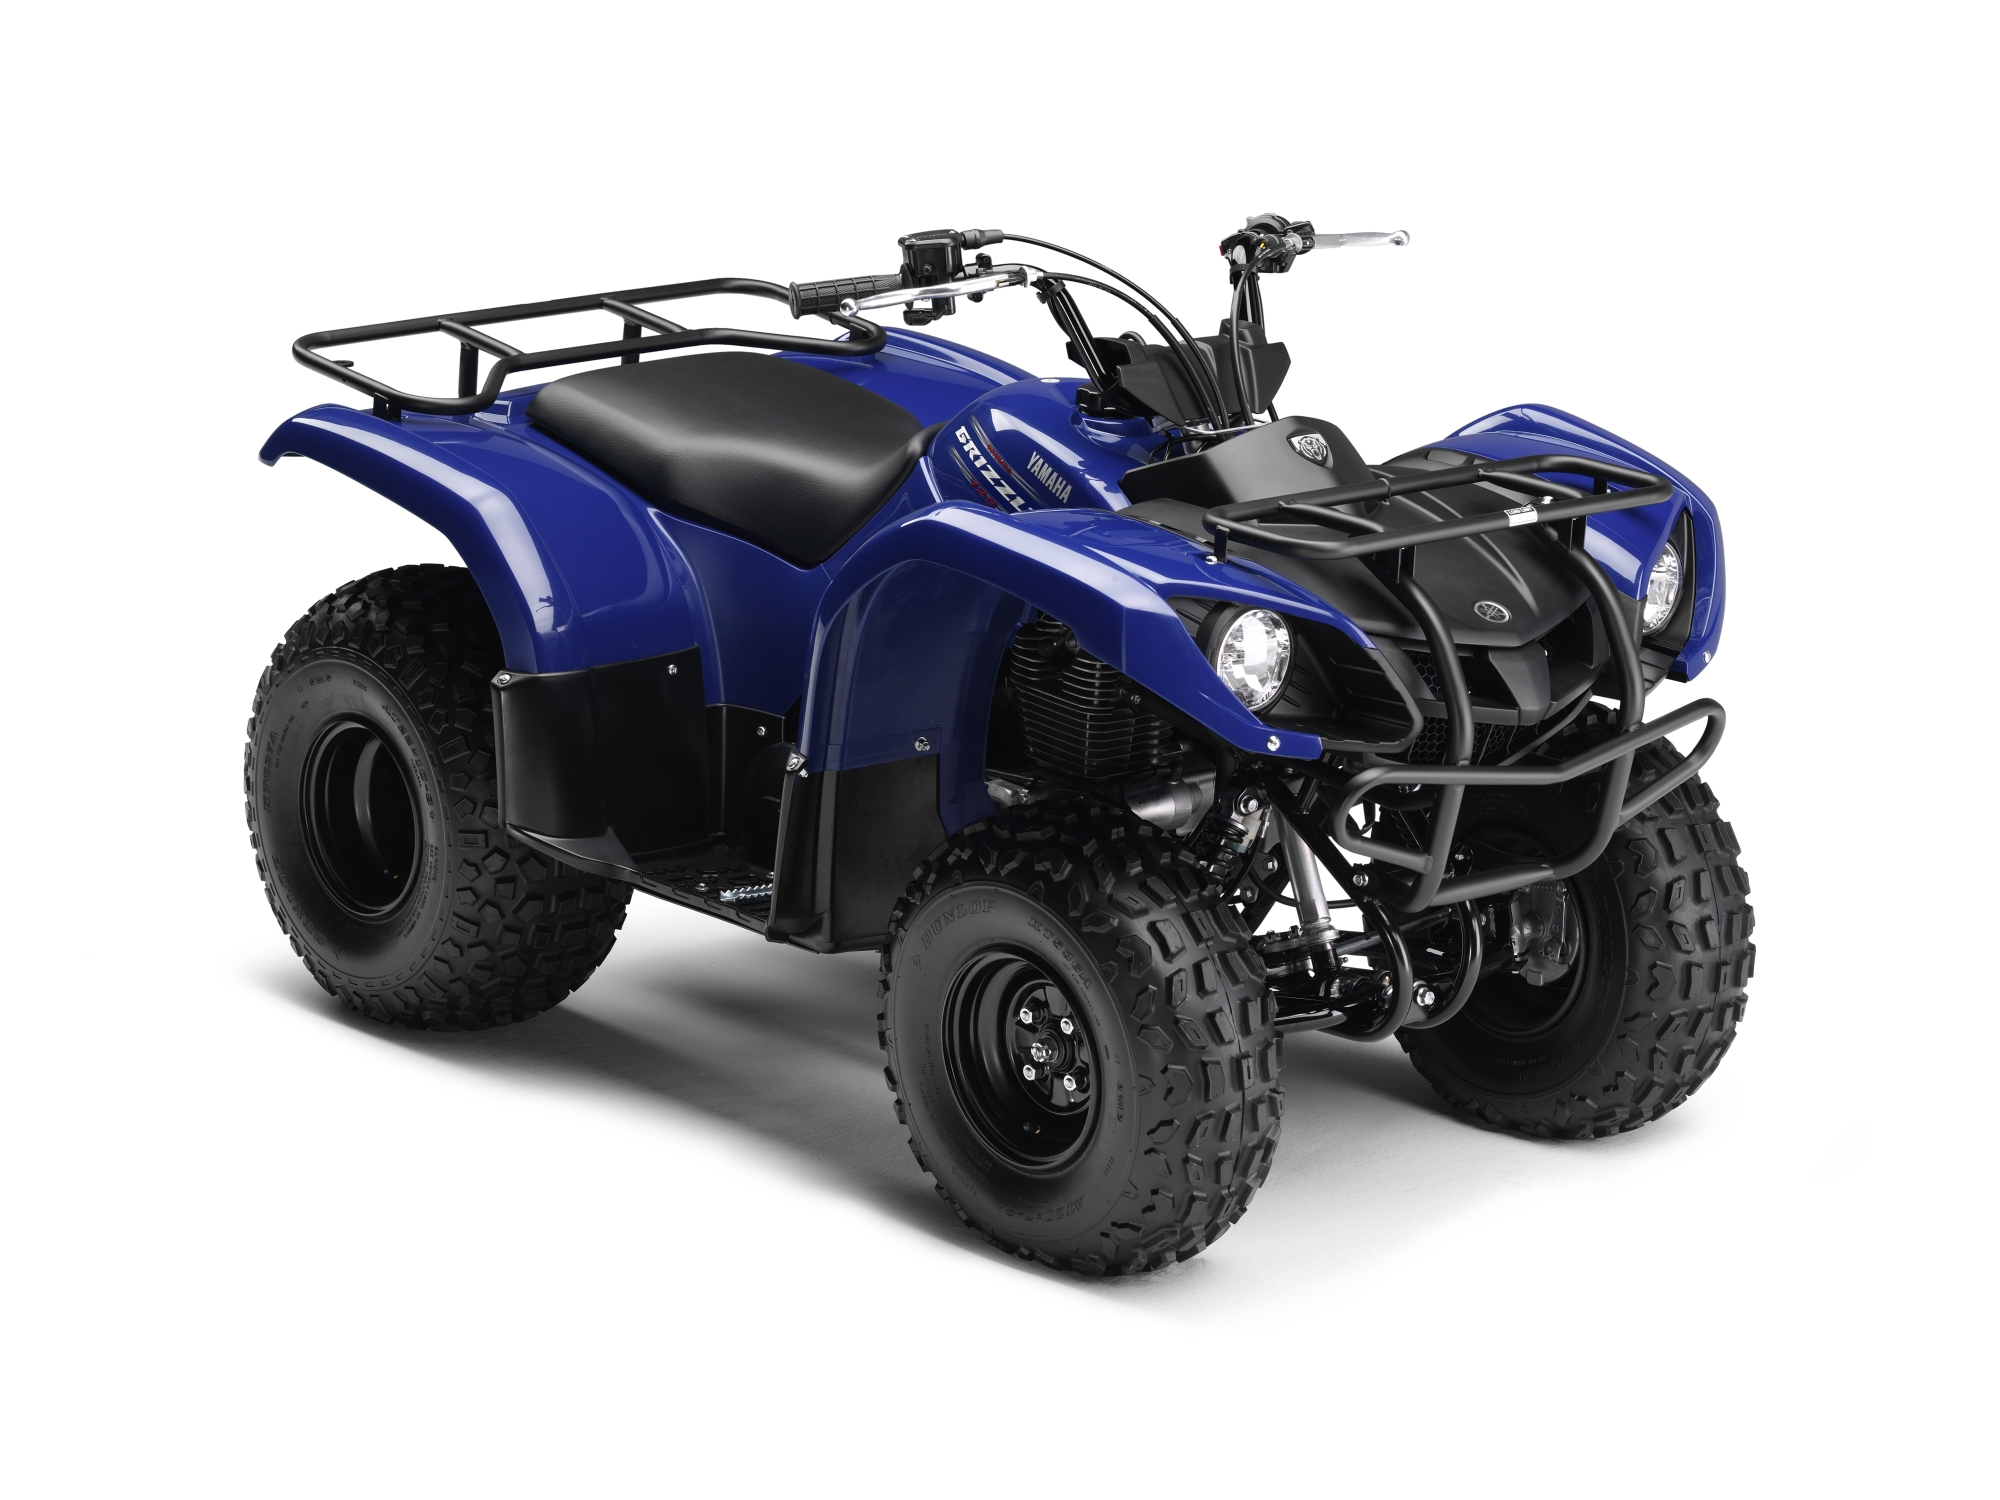 gebrauchte yamaha grizzly 125 motorr der kaufen. Black Bedroom Furniture Sets. Home Design Ideas